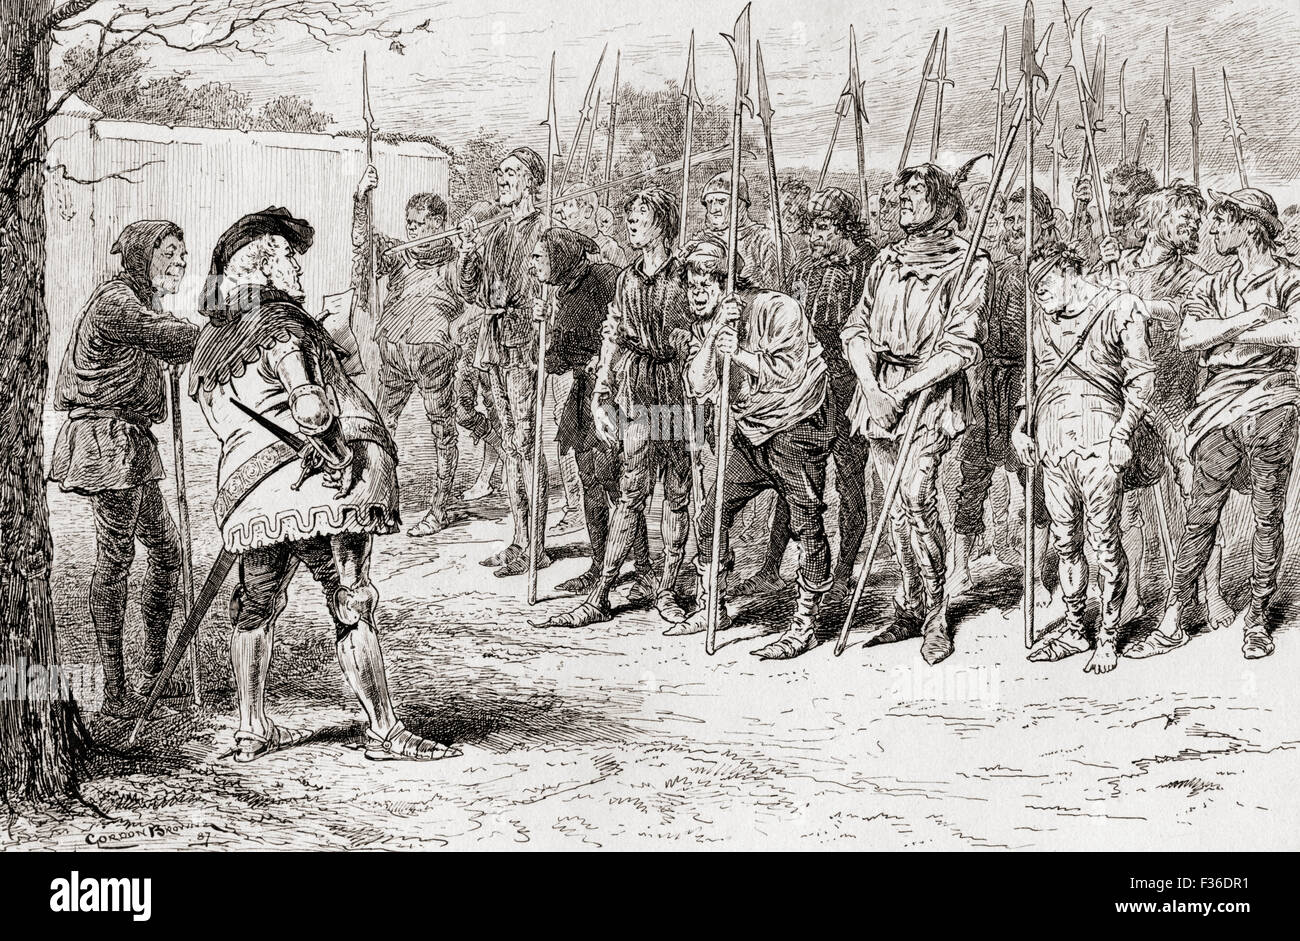 A scene from William Shakespeare's play King Henry IV, Part 1, Act IV, scene 2.   Falstaff's ragged regiment. - Stock Image